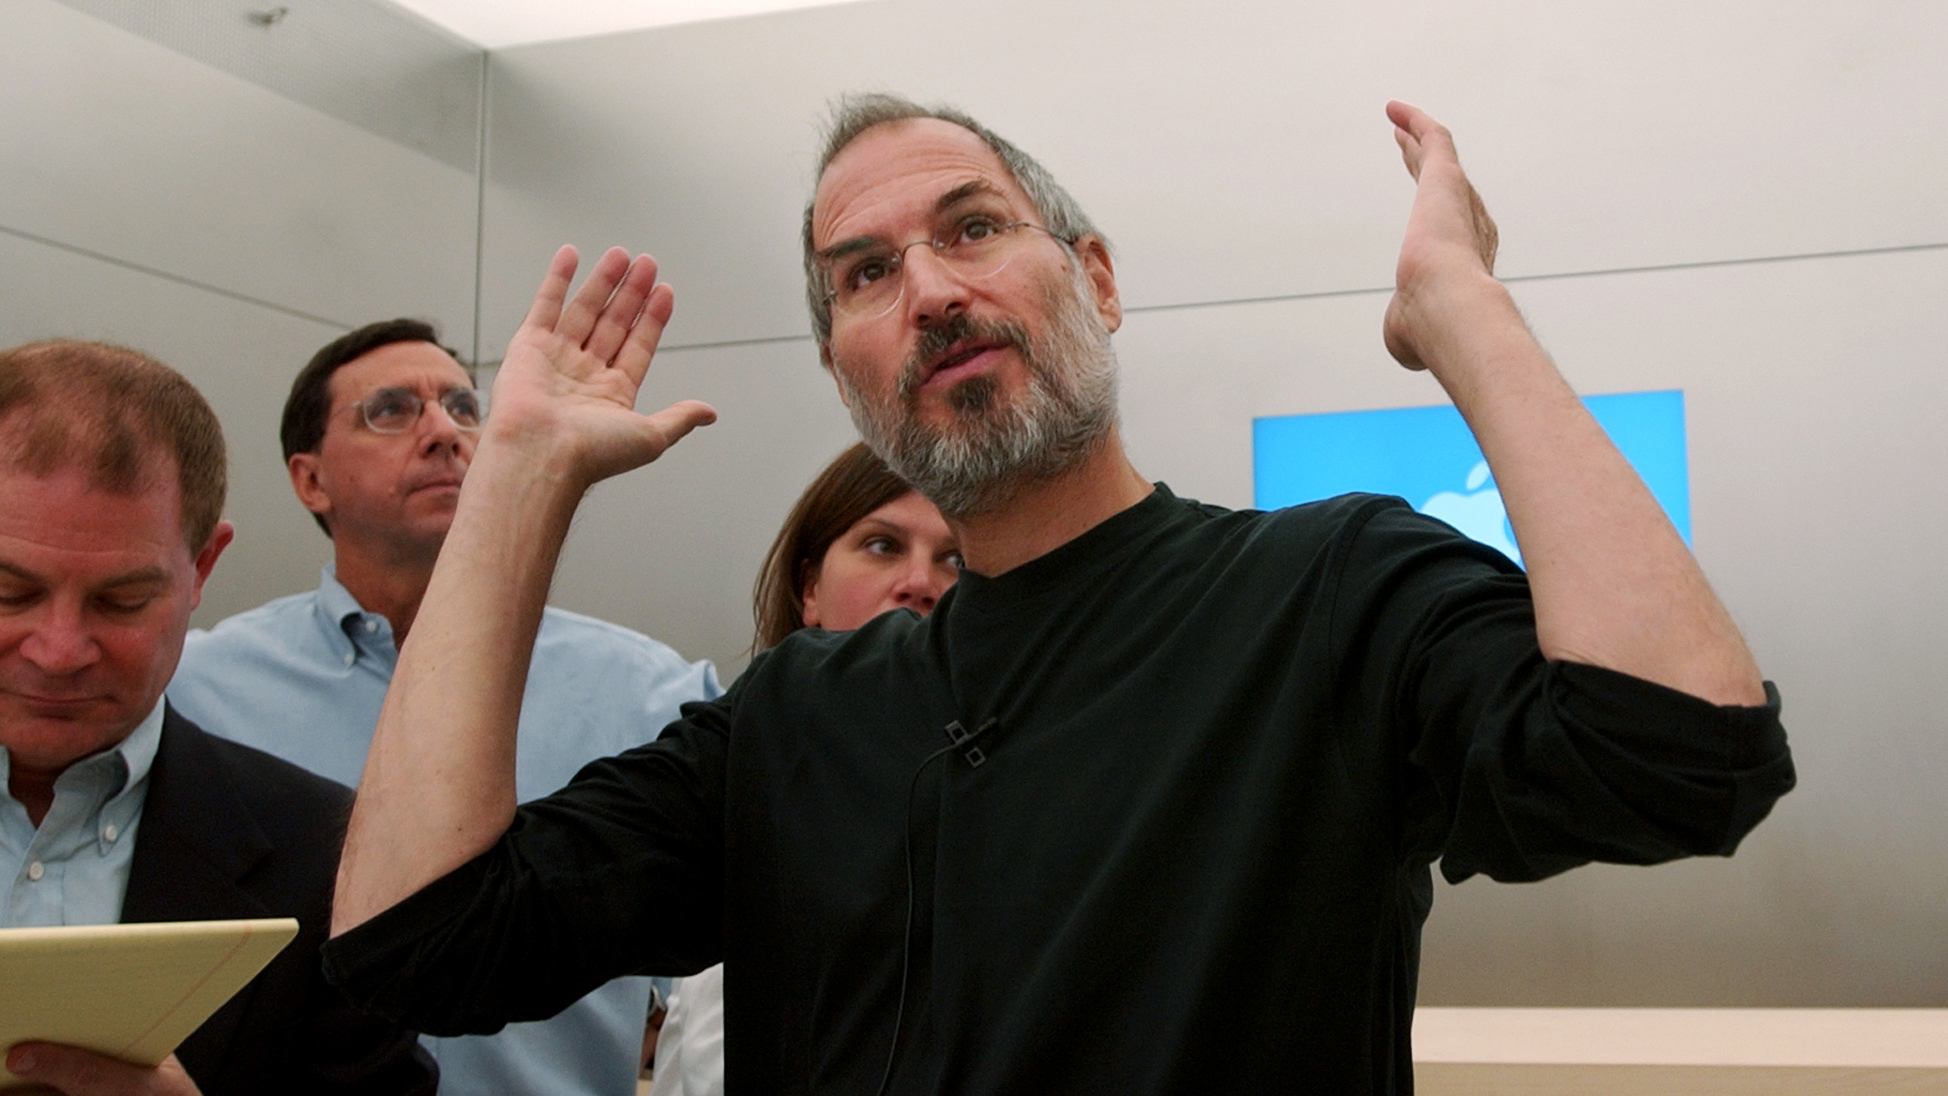 FILE--In a Oct. 14, 2004 file photo shows Apple CEO Steve Jobs gesturing in Palo Alto, Calif. just after he underwent cancer surgery in July, 2004. Jobs is taking his second medical leave of absence in two years, raising serious questions about his health and the leadership of a company at the forefront of a personal computing revolution. Apple did not provide any further information about Jobs' current condition, including whether Jobs is acutely ill, whether the leave is related to his 2009 liver transplant or whether he is at home or in a hospital. (AP Photo/Paul Sakuma, file)